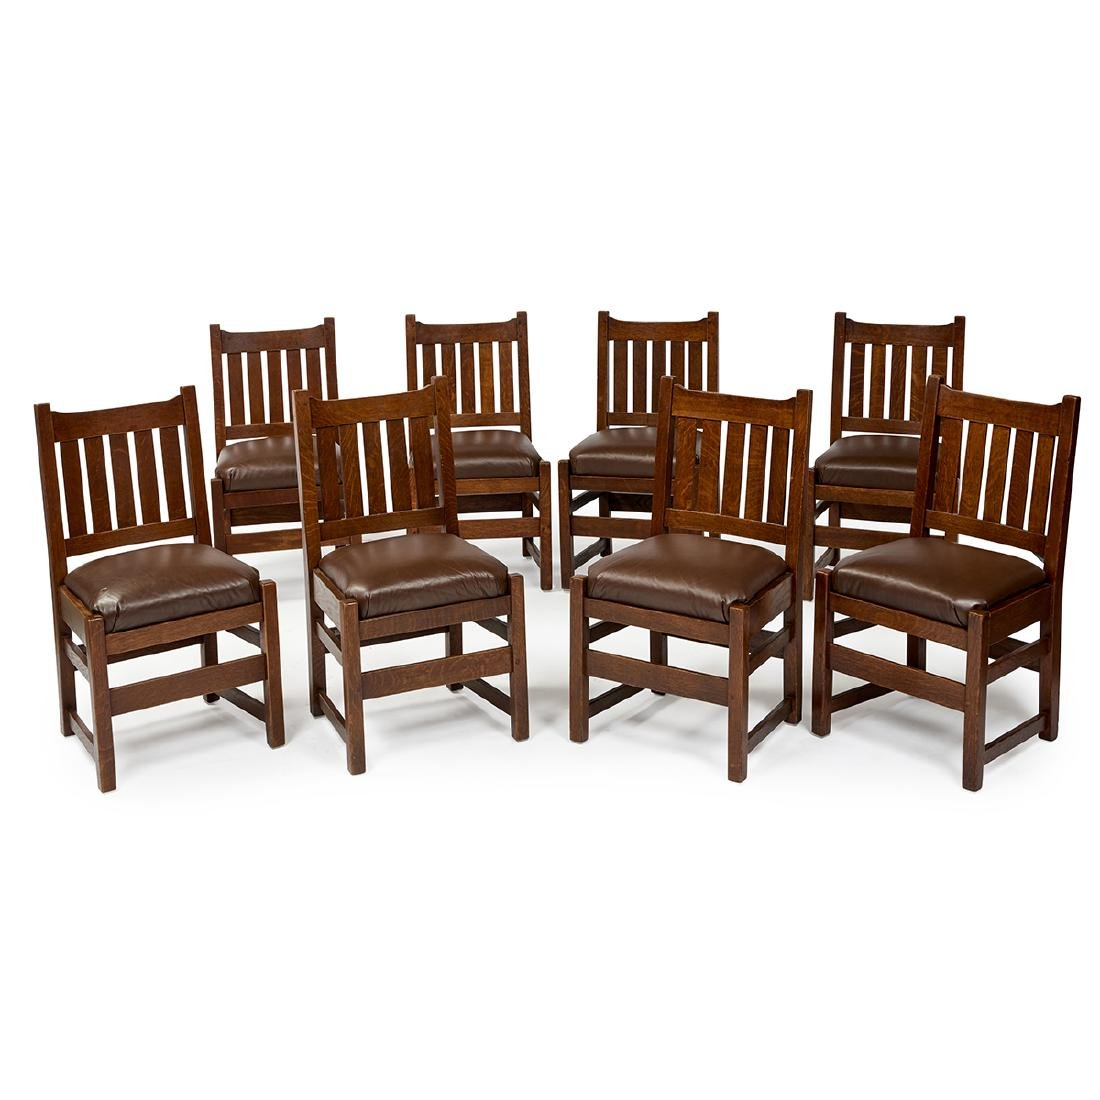 L. & J.G. Stickley set of (8) dining chairs, #820